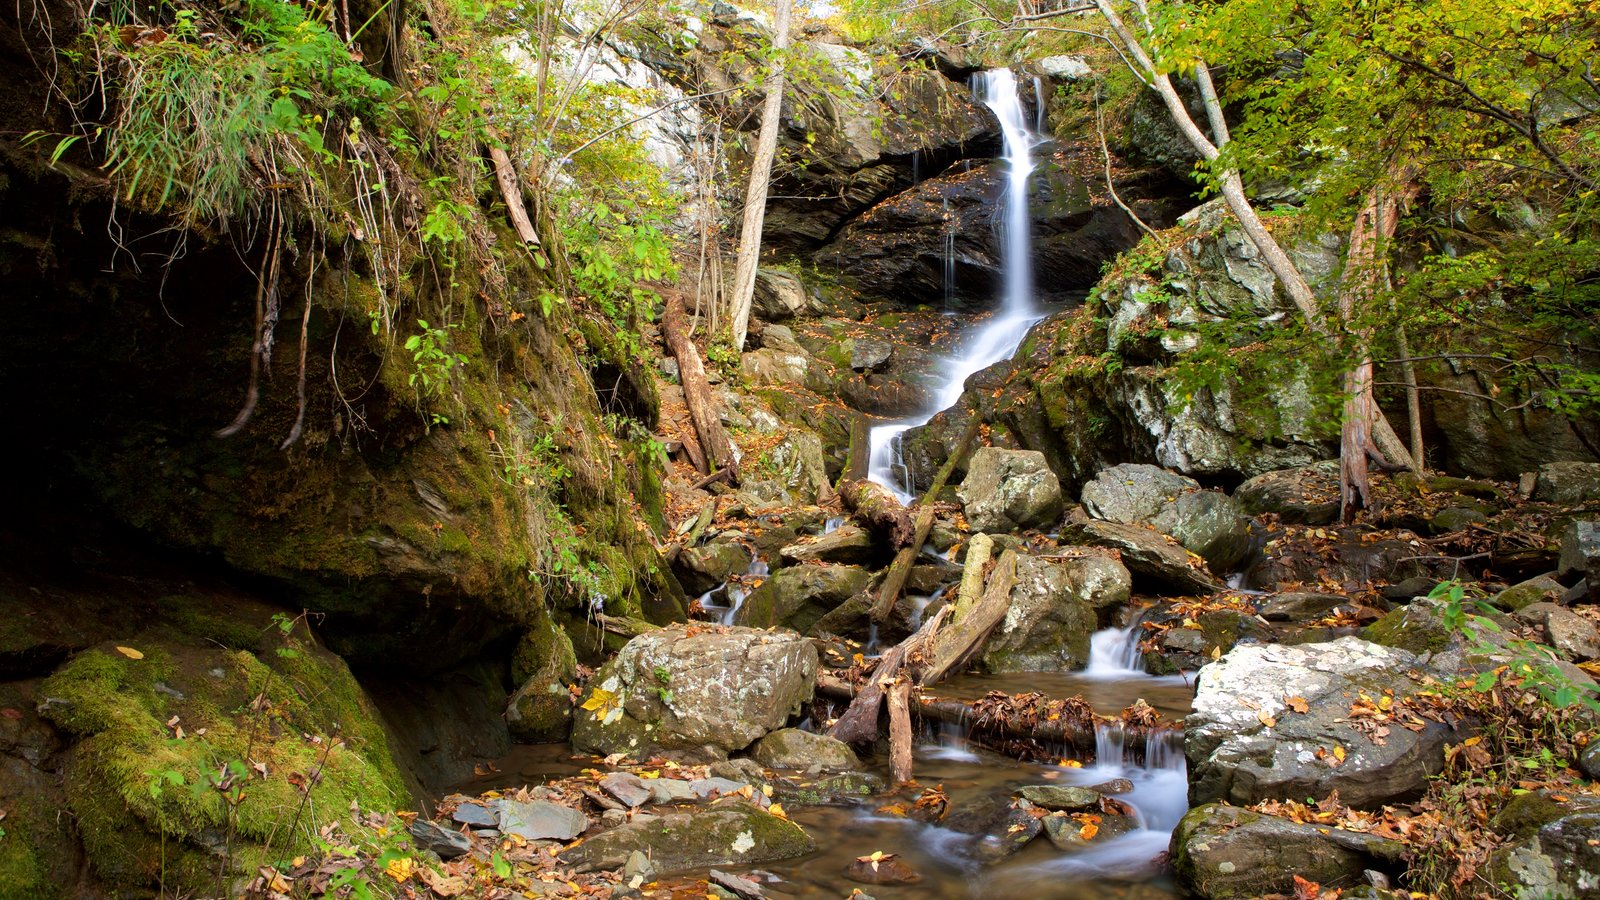 Shenandoah National Park which includes mountains, forest scenes and a cascade